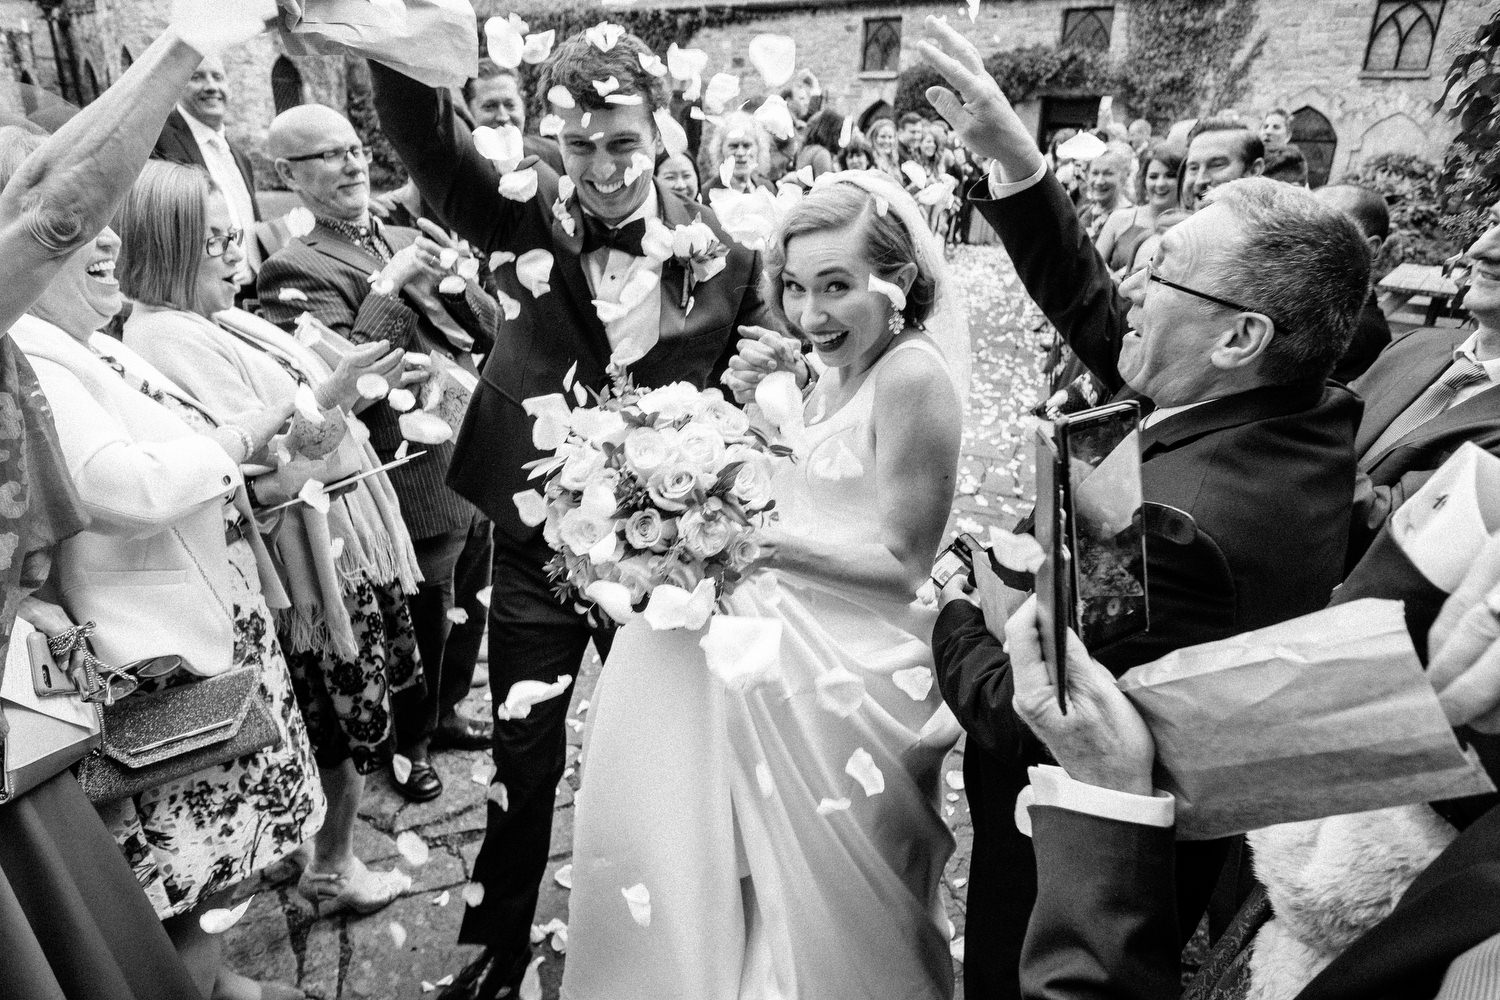 000000000000000000000129_bride_style_vintage_photography_david_mcclelland_ireland_castle_hollywood_petals_confetti_kinnity_wedding_photographer_fujifilm